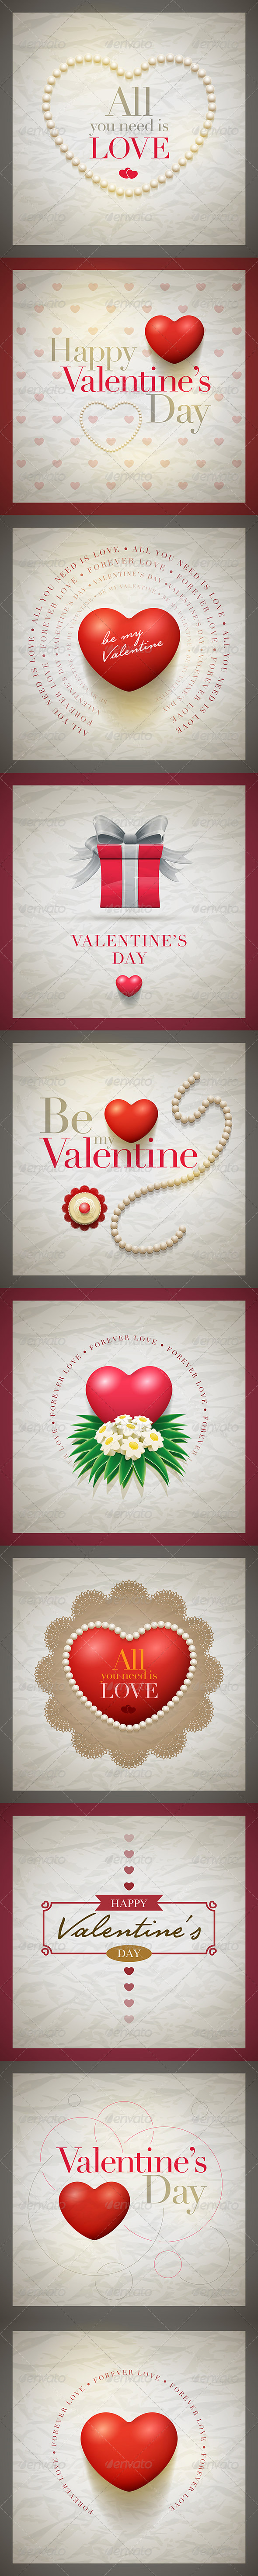 GraphicRiver Valentine Card Collection 6603665